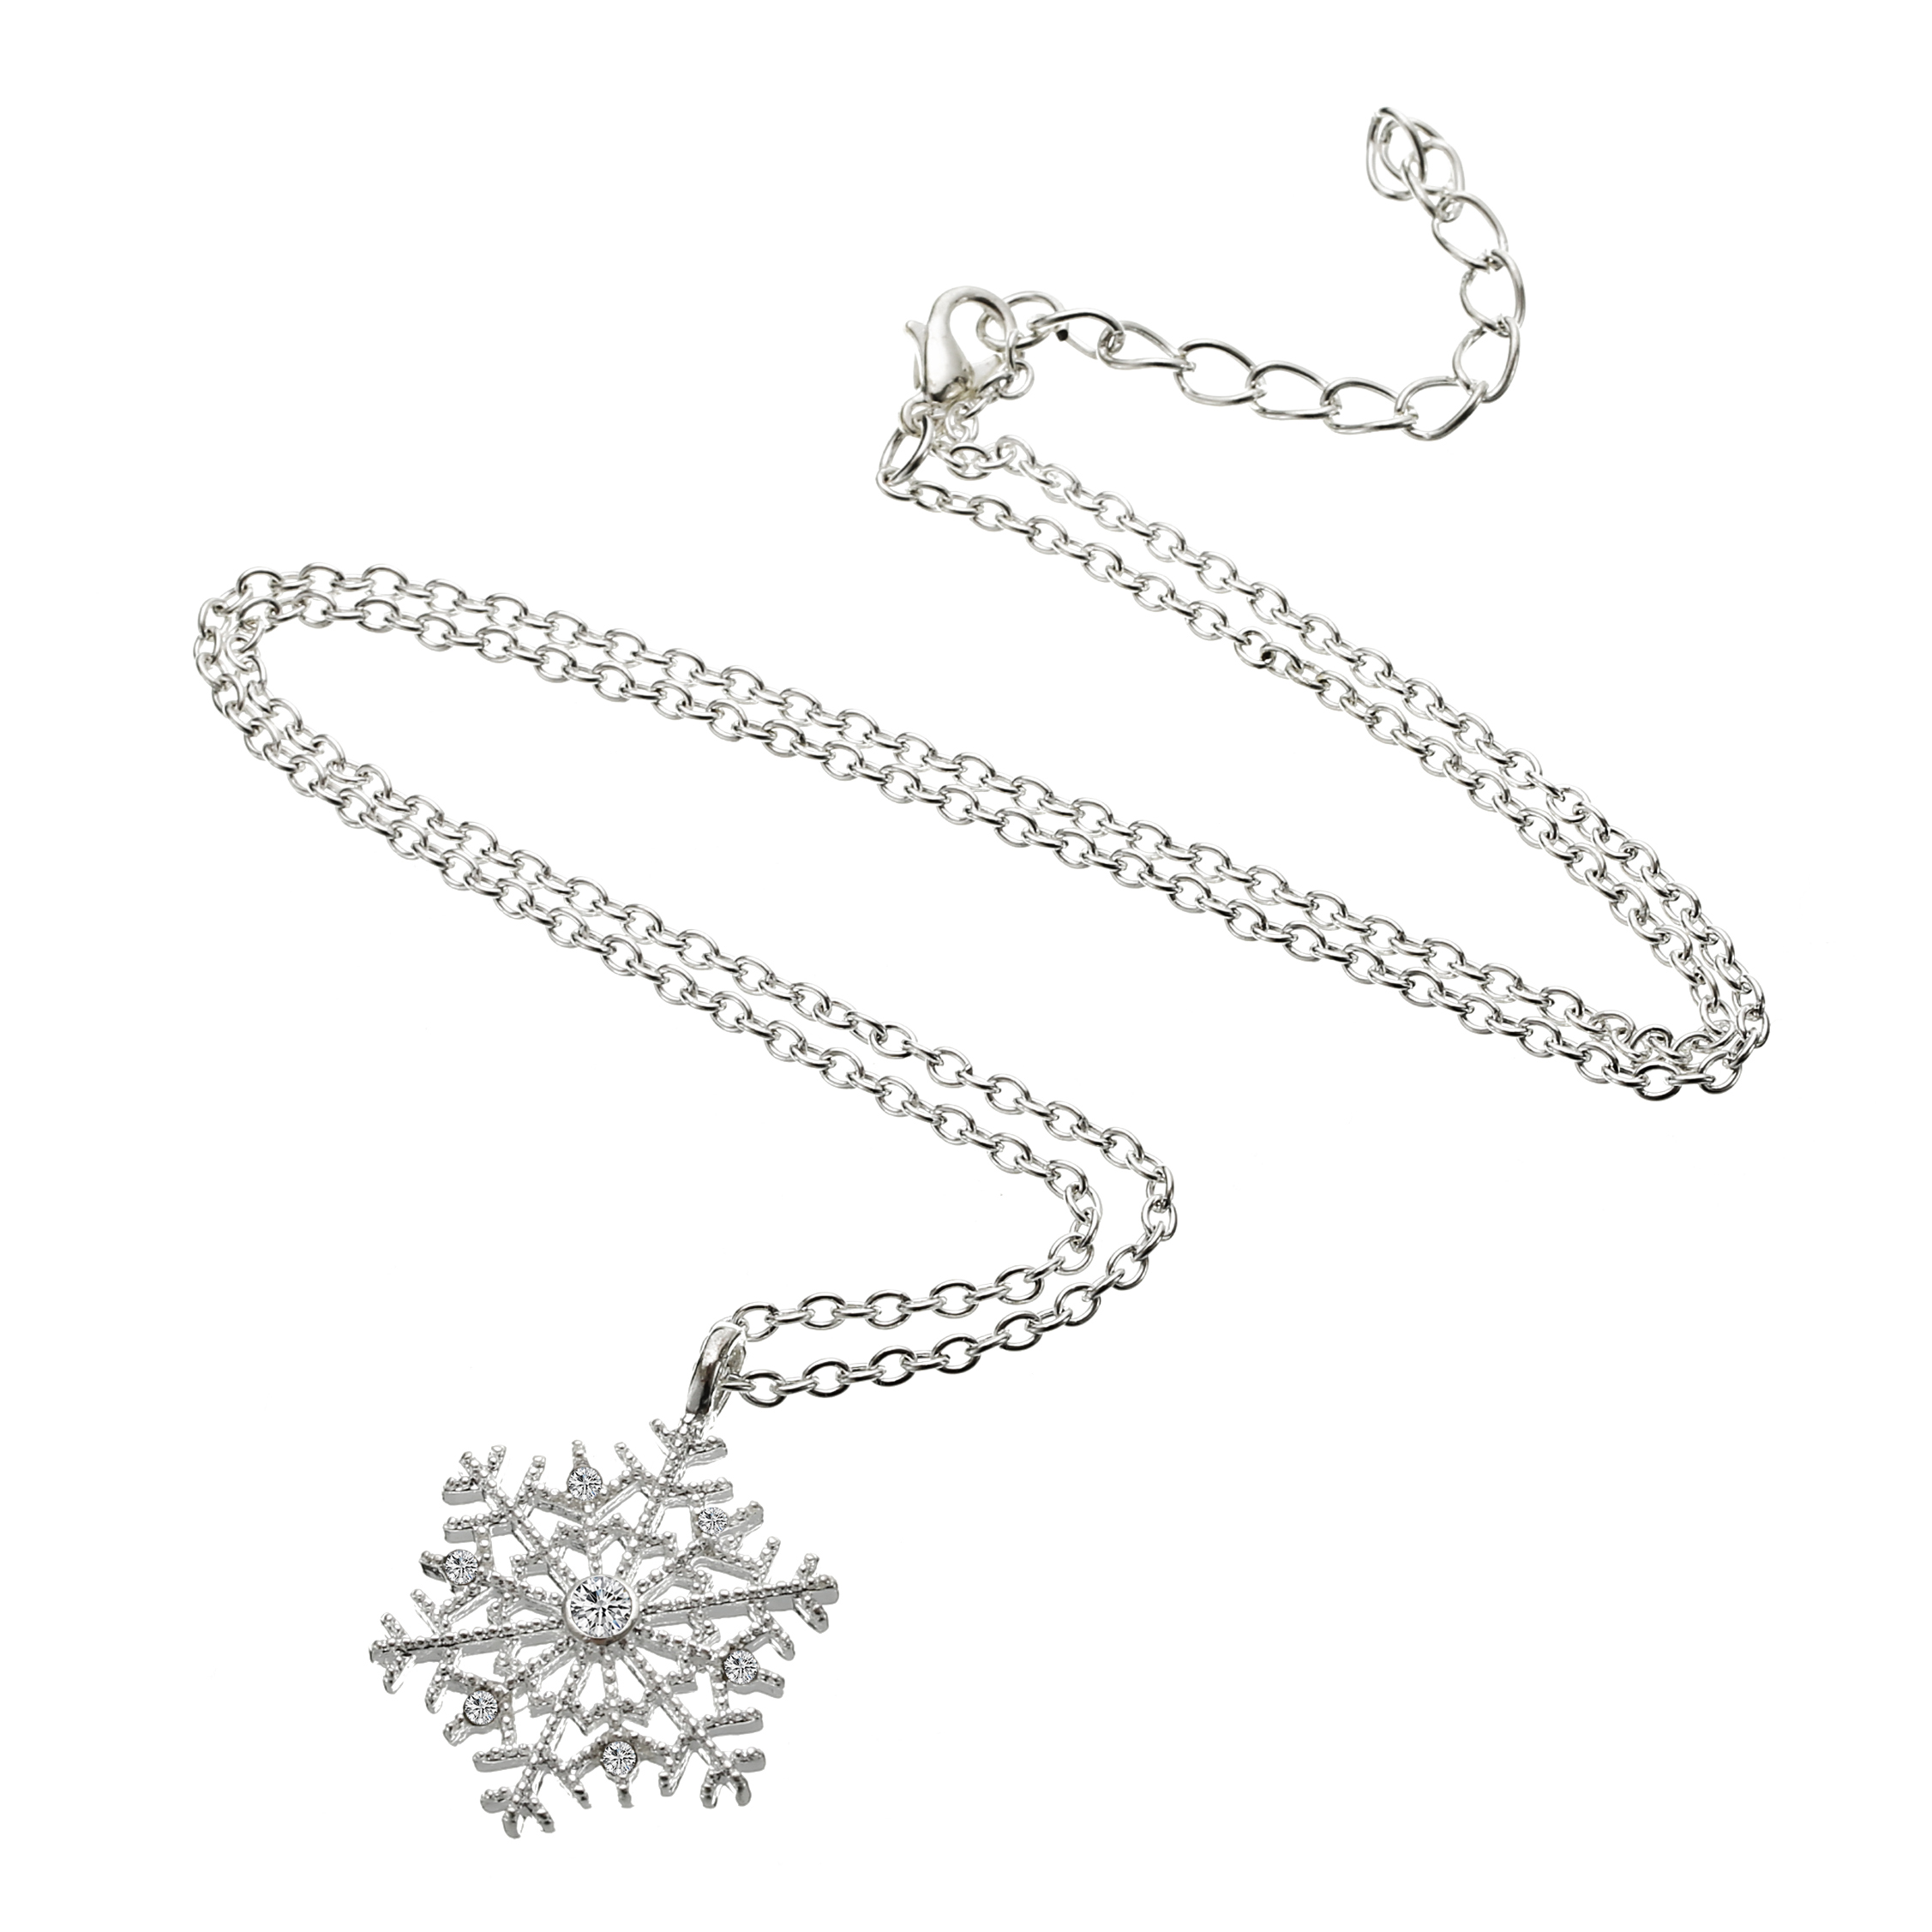 New Year Christmas Gift Fashion Luxury Silver Plated Snowflake Necklace Pendants Snow Flower Chain Necklace Jewelry for Women